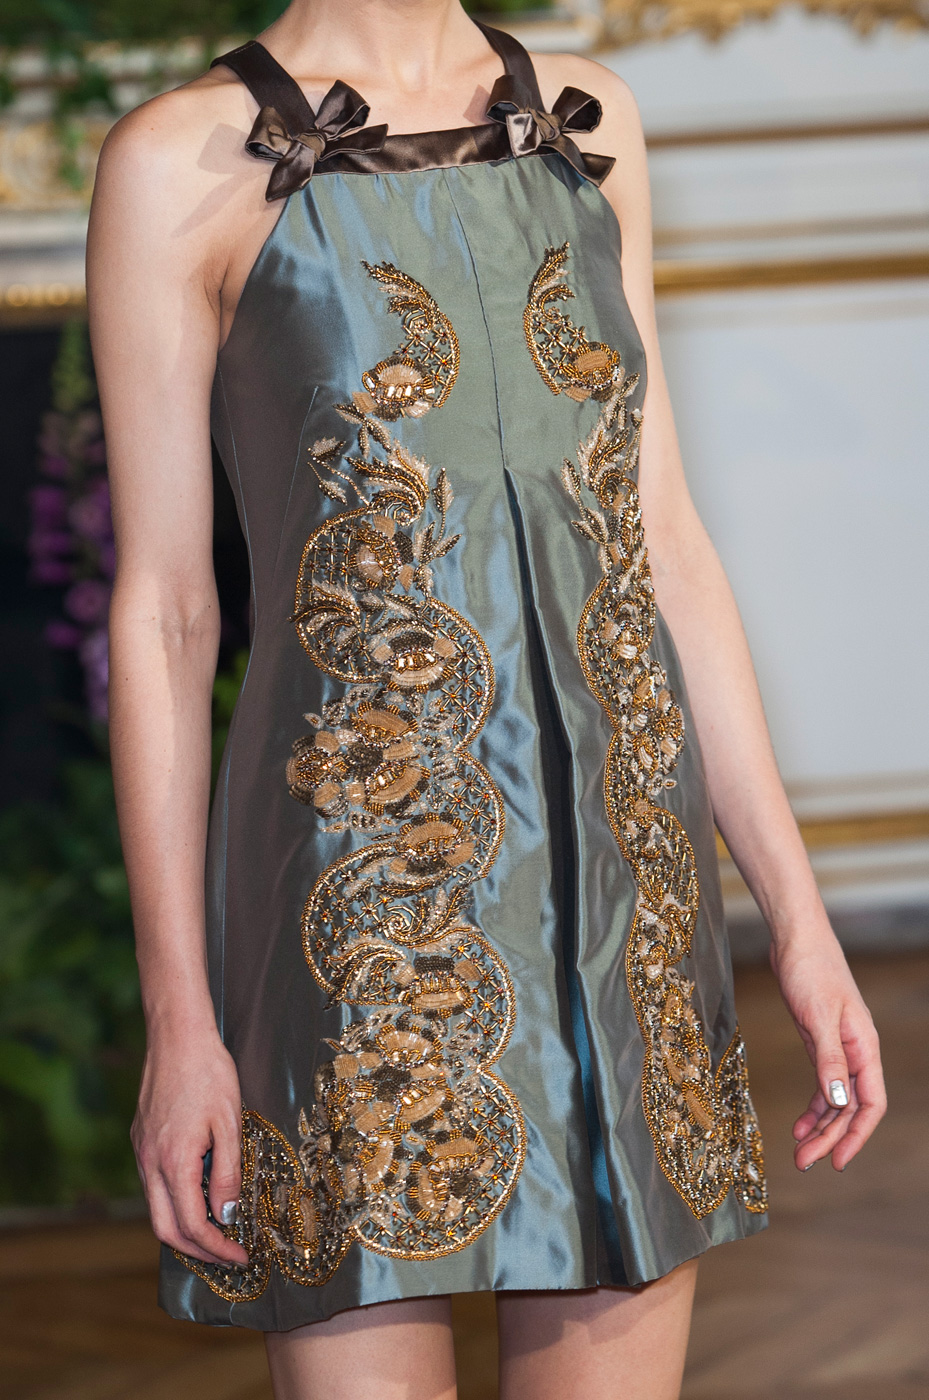 Alexis Mabille opted for a metallic blue half-moon manicure, with a silver semicircle accenting the bottom of the models' nails.